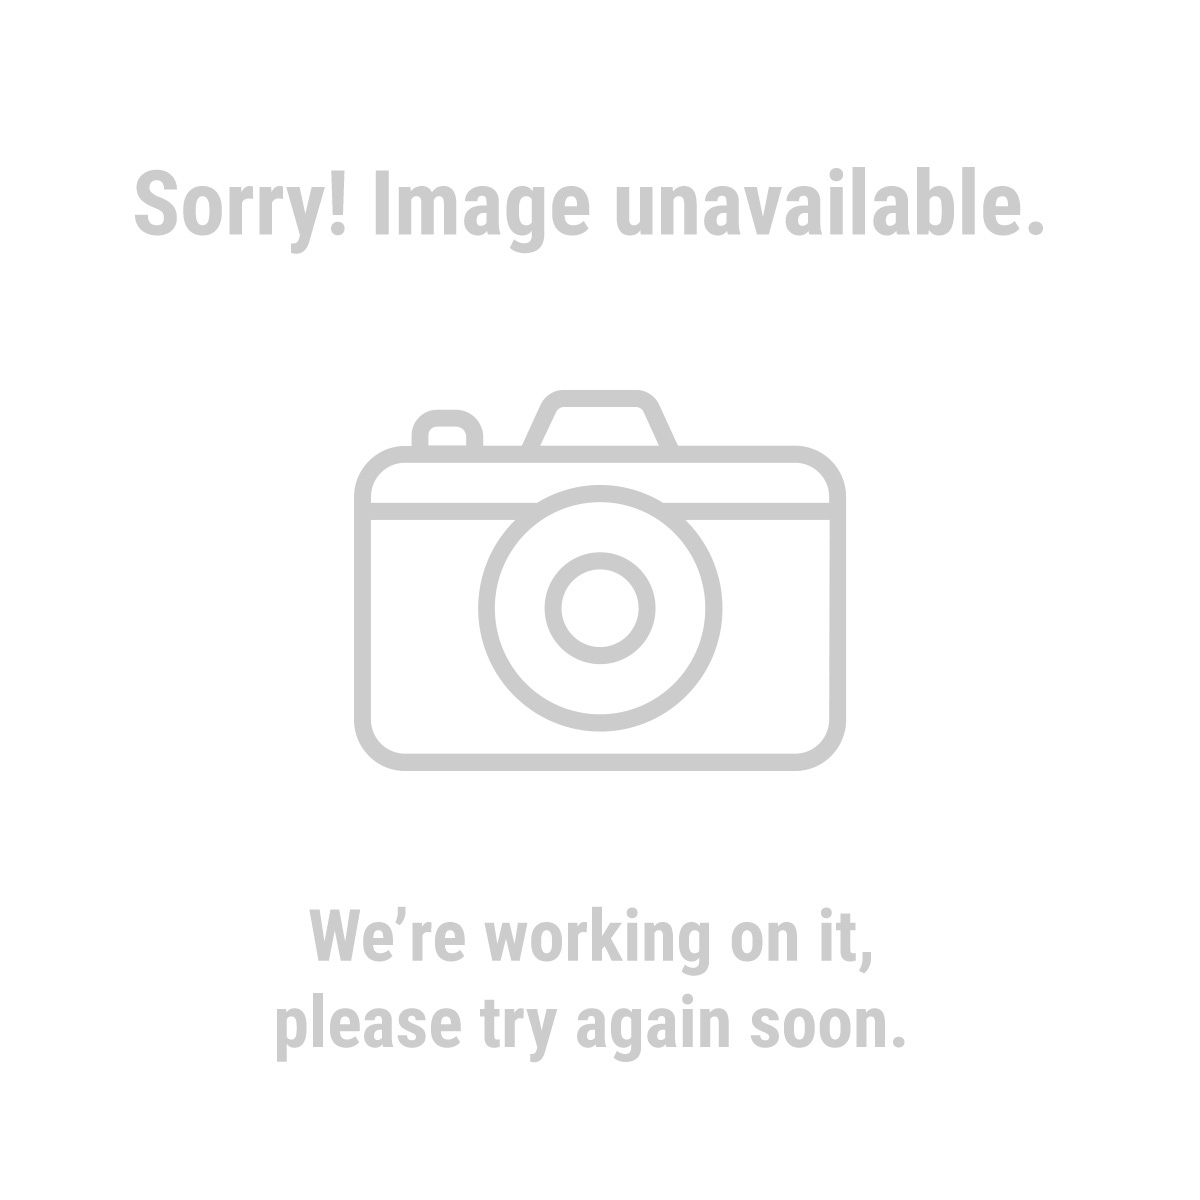 Rate Your Harbor Freight Tool Experiences Page 105